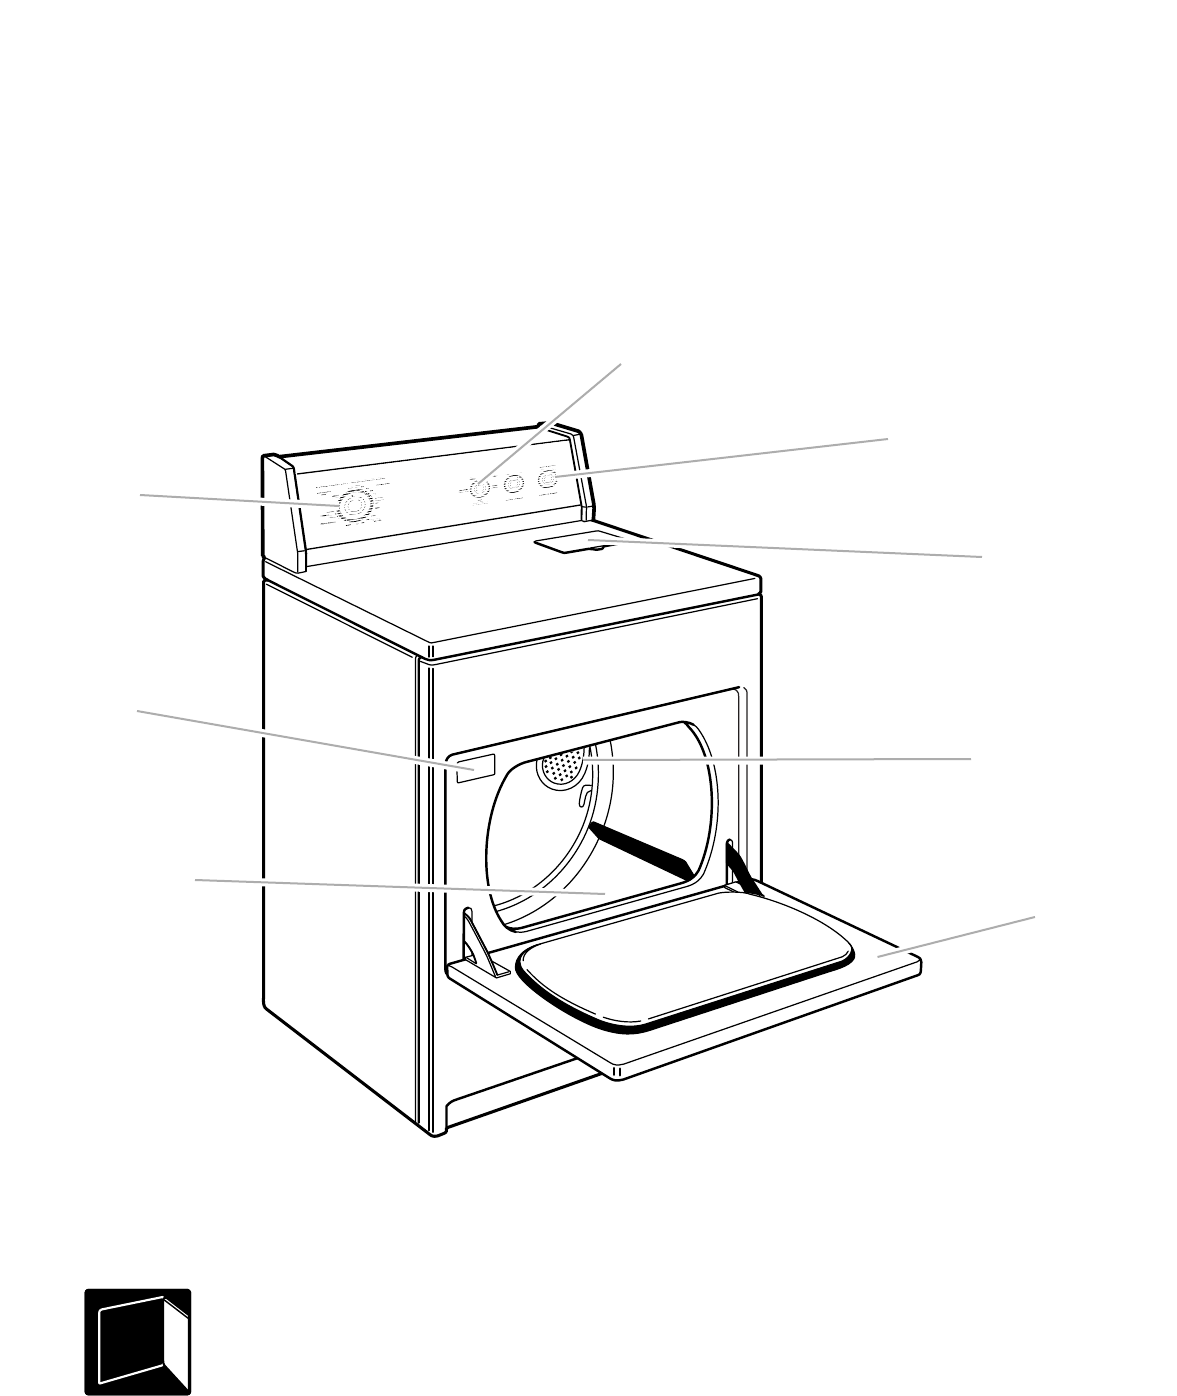 Page 5 of Whirlpool Washer TEDX640E User Guide